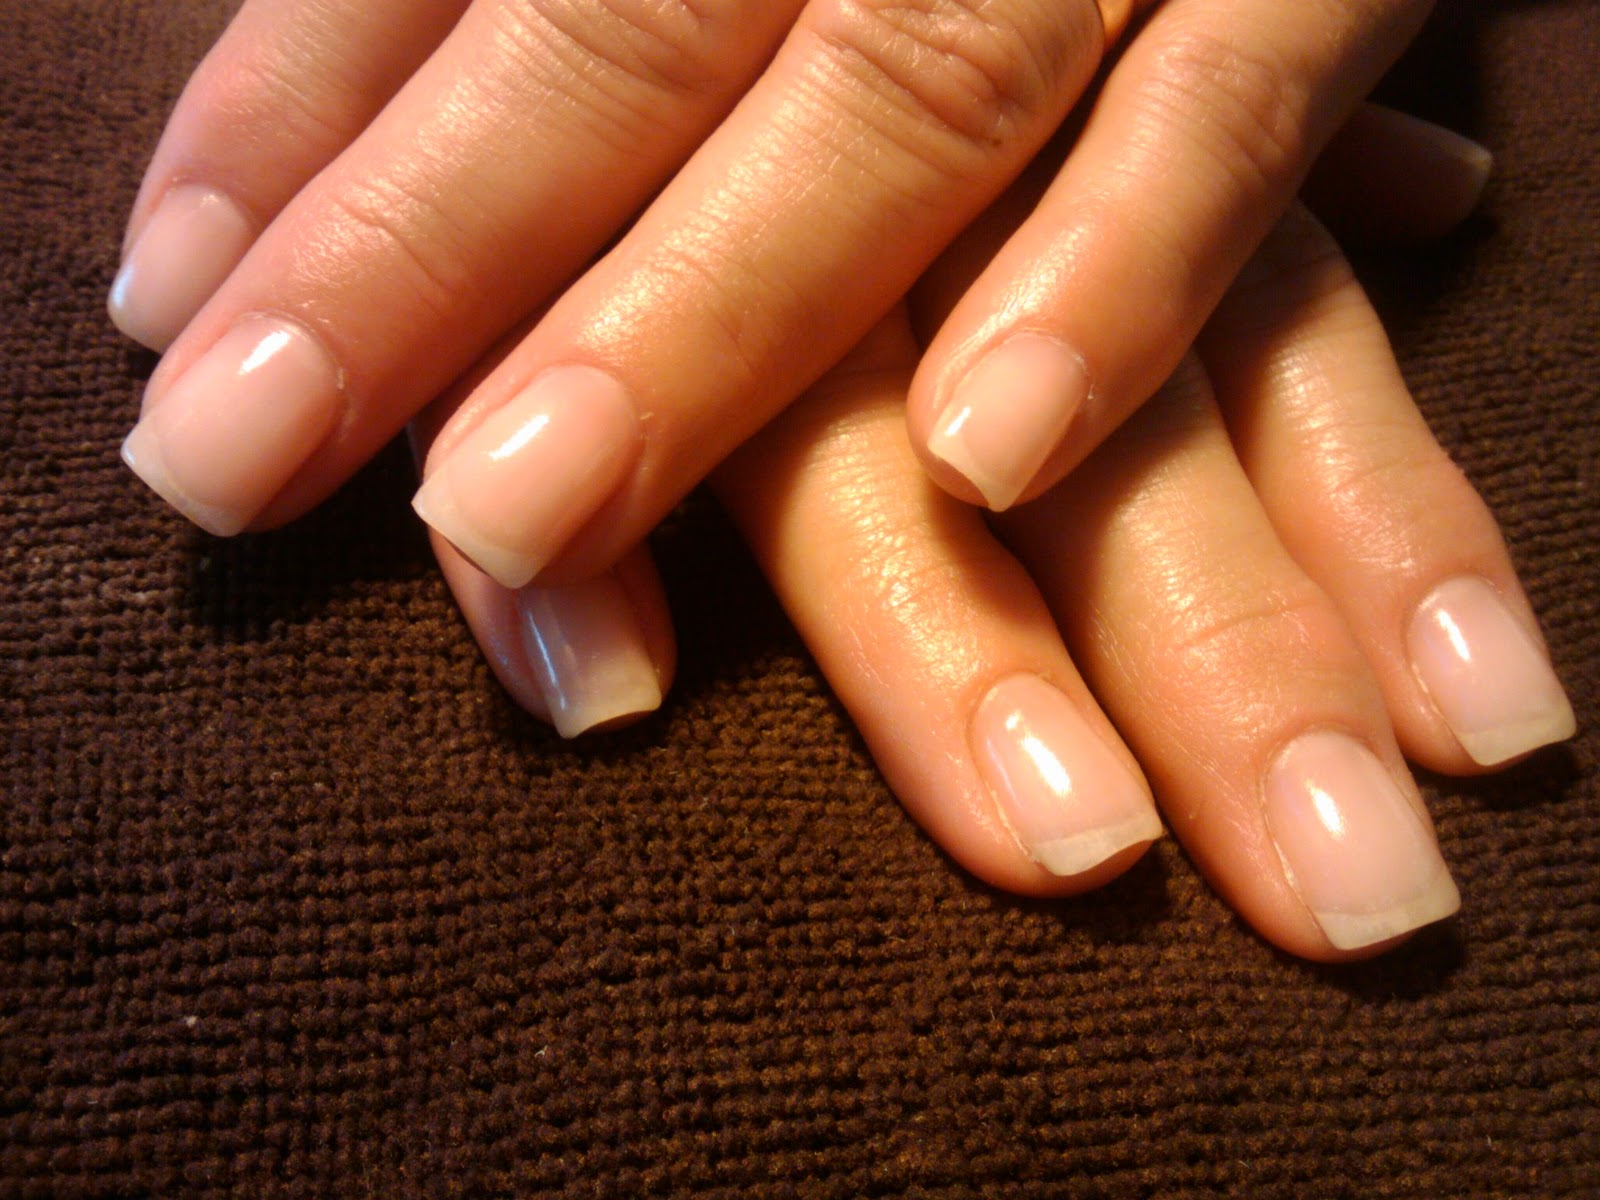 Let's make your nails pretty: Let's give those natural ...